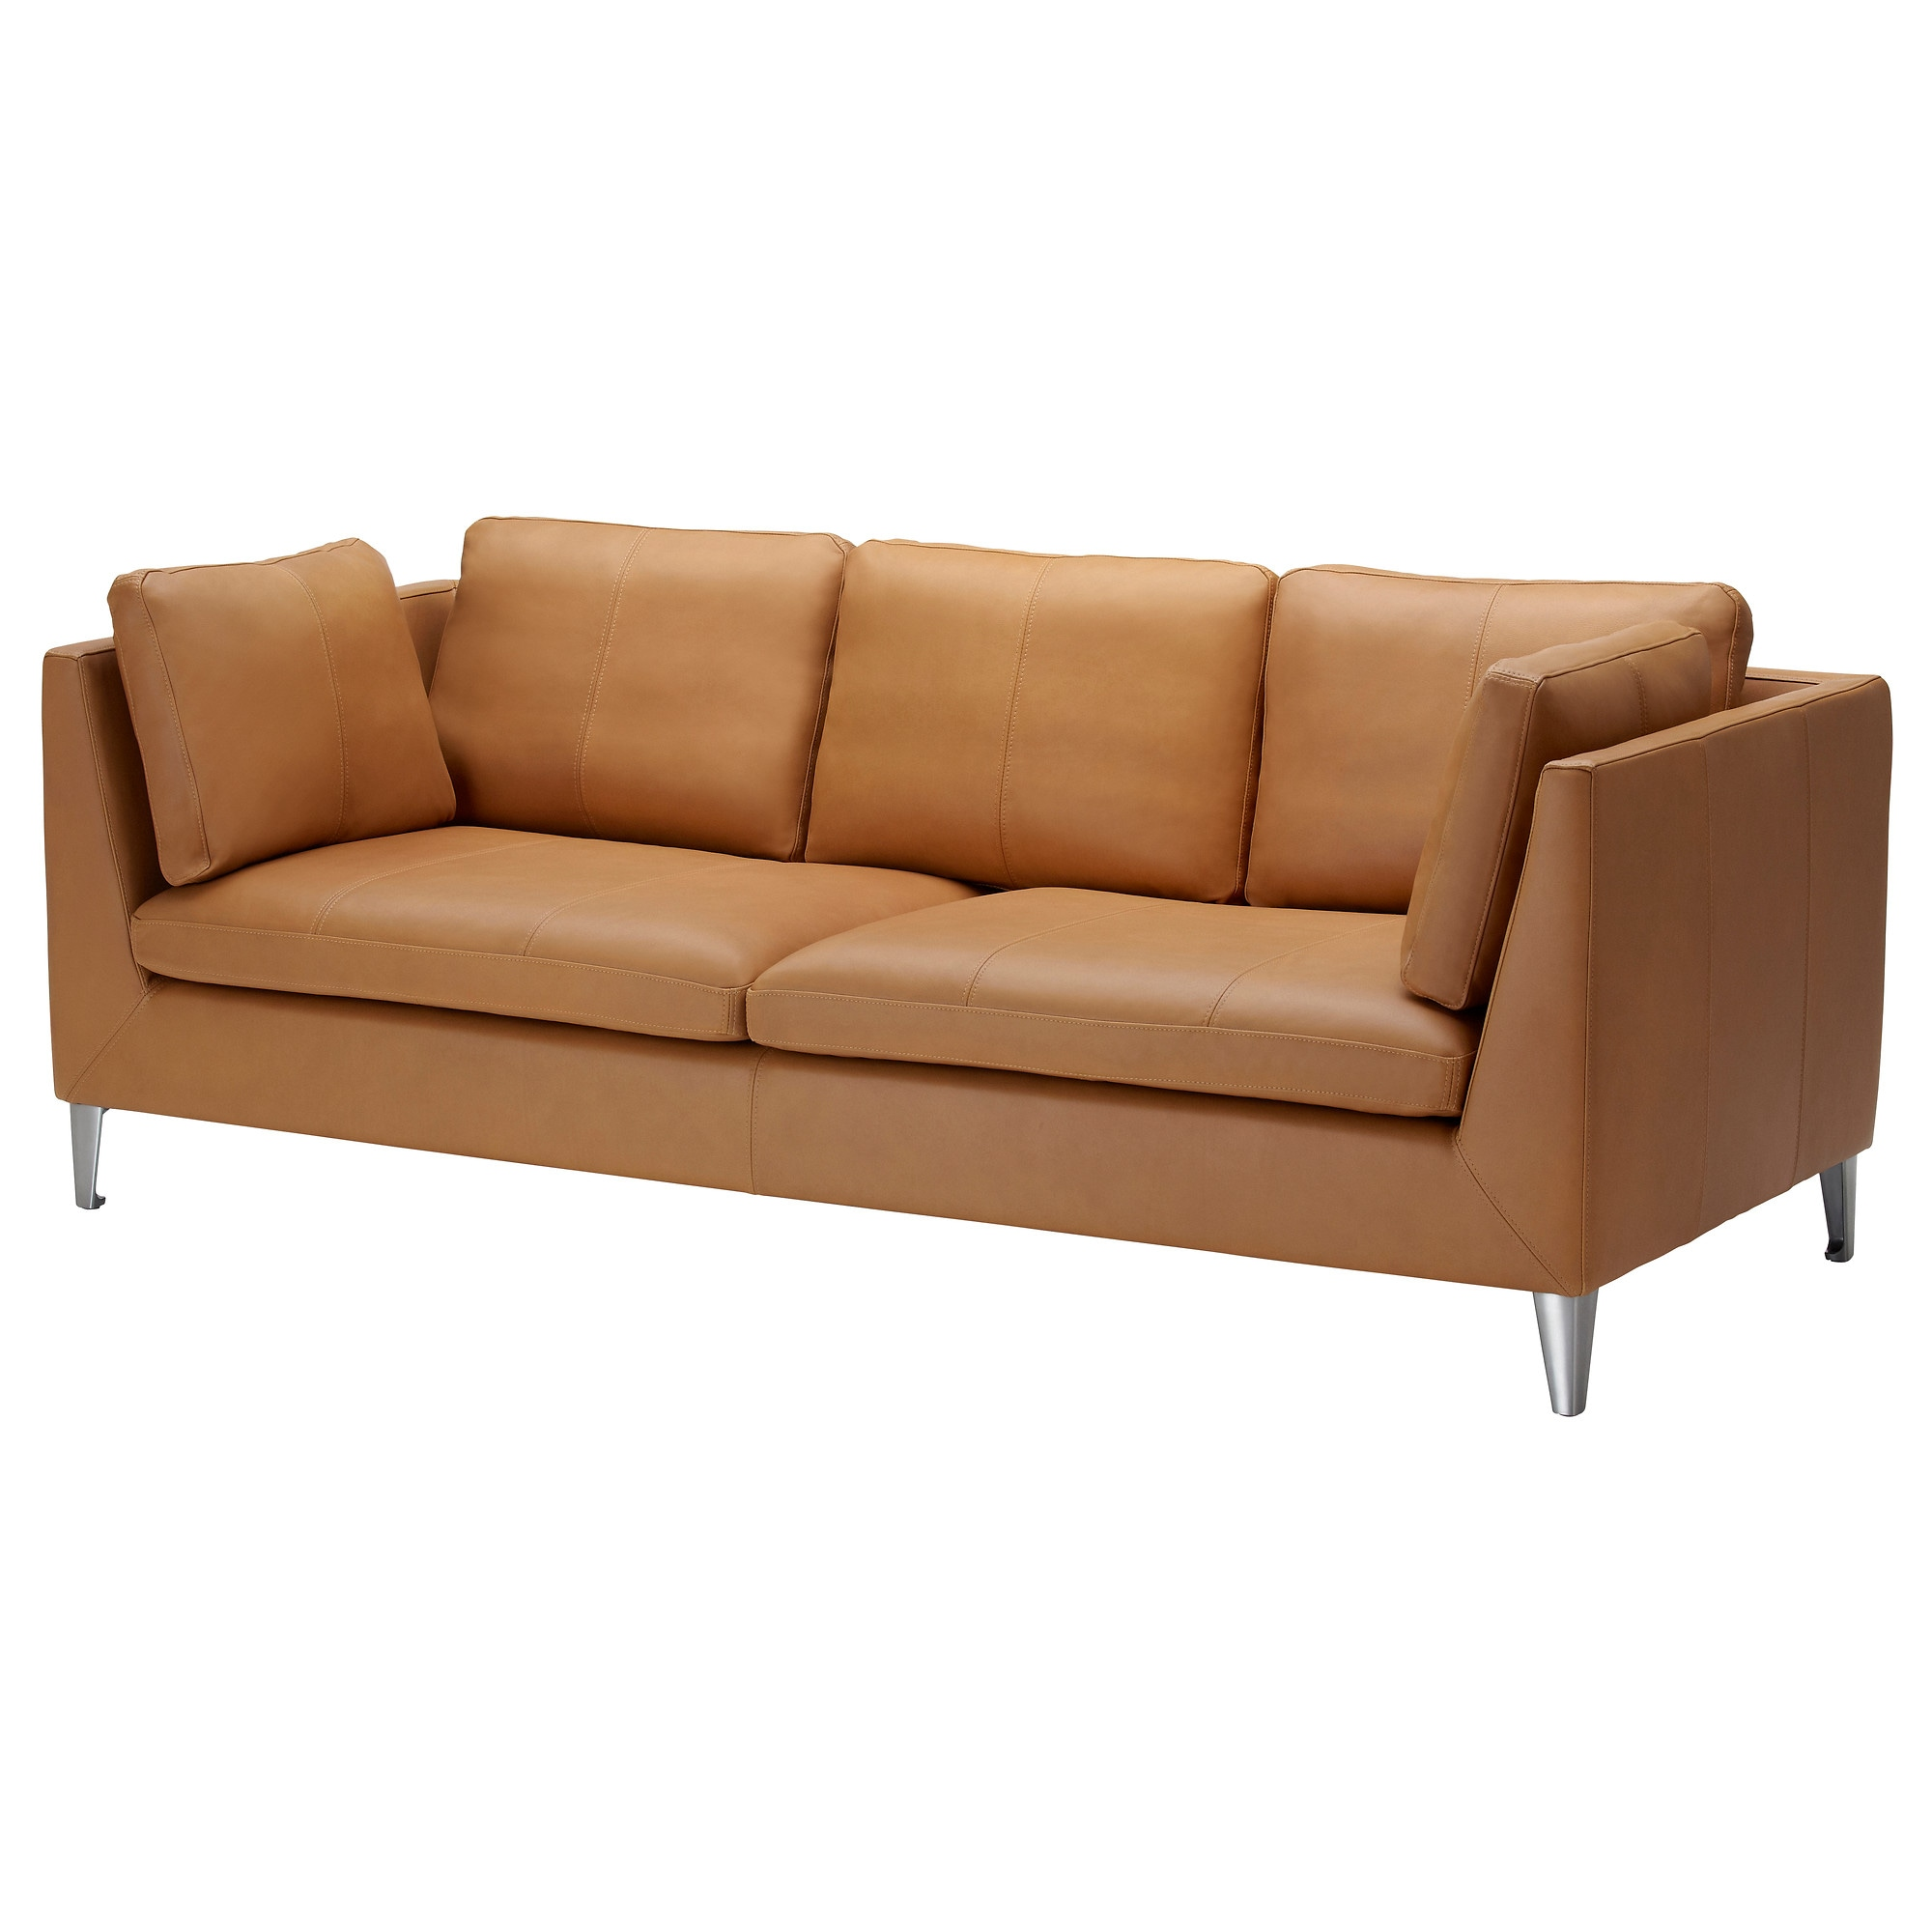 leather  faux leather couches chairs  ottomans  ikea - stockholm sofa seglora natural width    depth